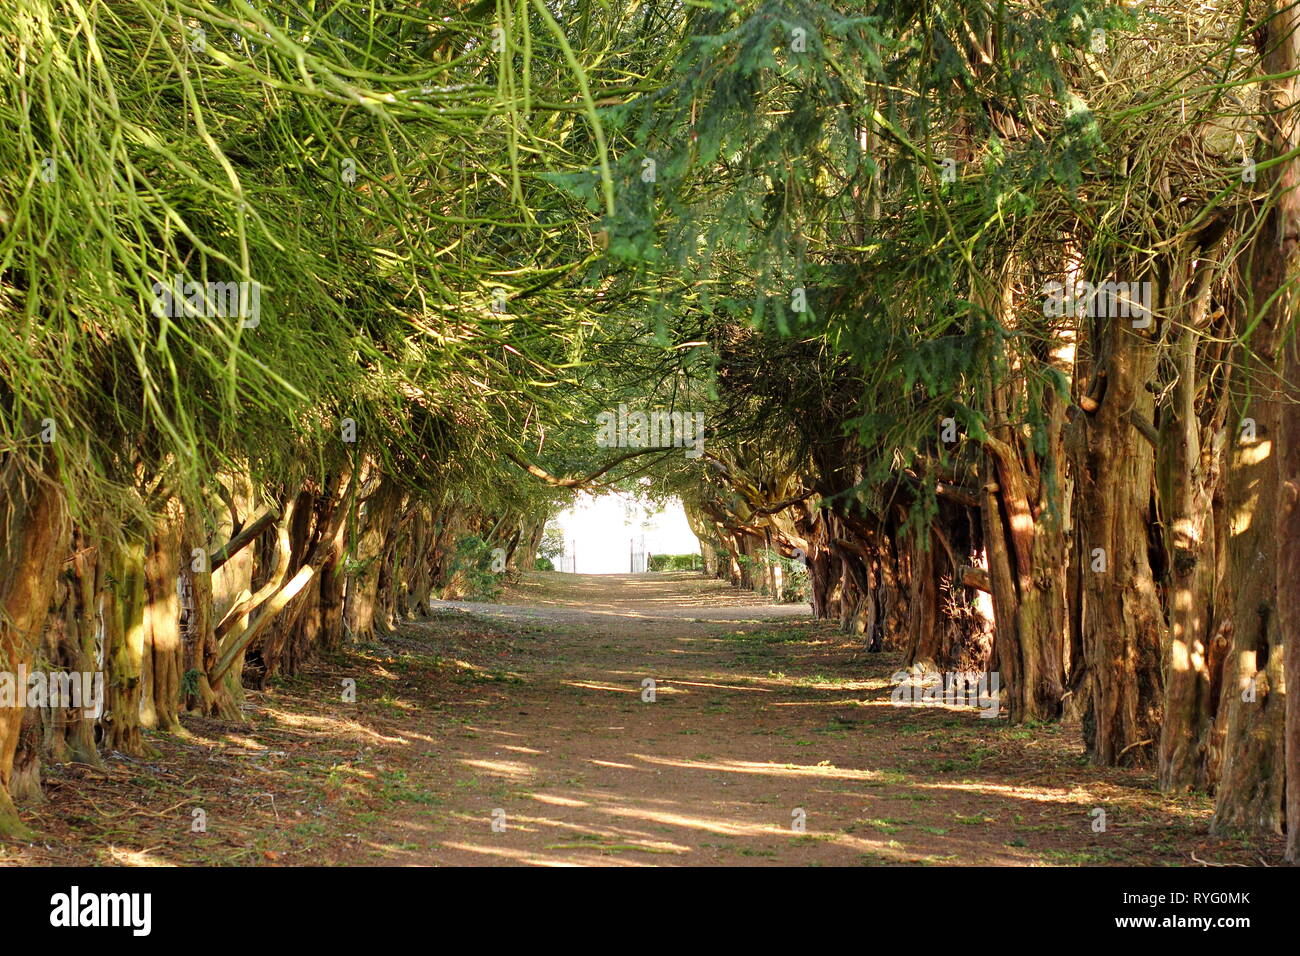 Taxus baccata. The Yew tree tunnel at Easton Walled Gardens near Grantham, Lincolnshire, England, UK - early spring - Stock Image